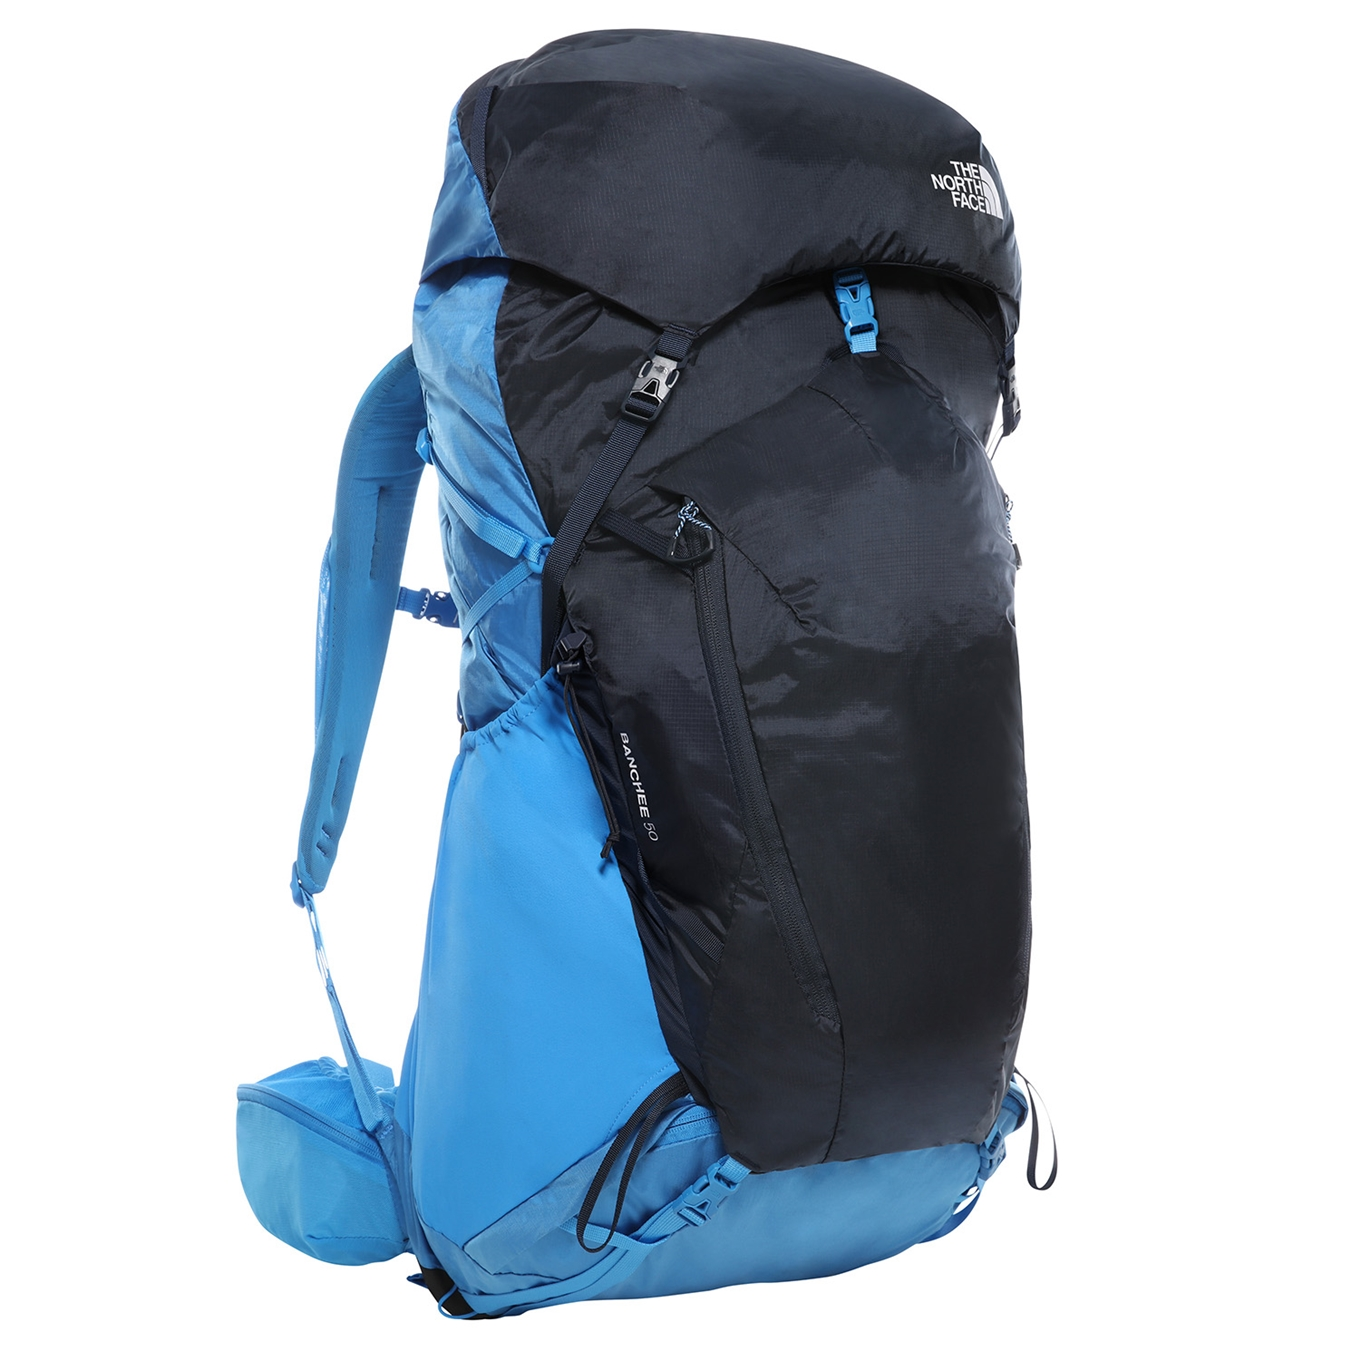 The North Face Banchee 50 Backpack SM clear lake blue / urban navy backpack <br/></noscript><img class=